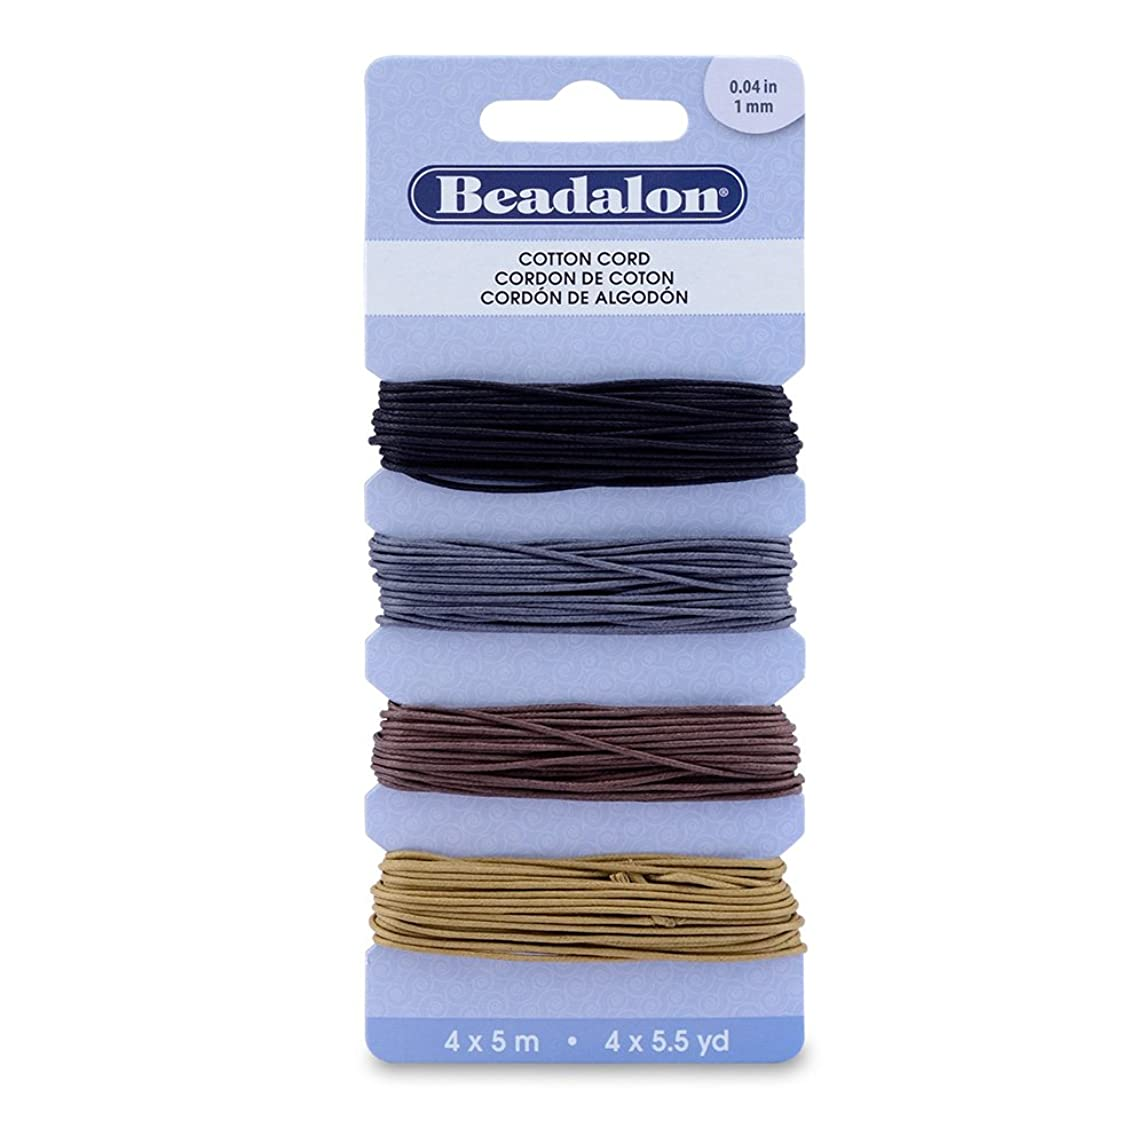 Beadalon Cotton Variety Pack Cord, 1mm/5m, Black/Silver/Brown/Light Brown